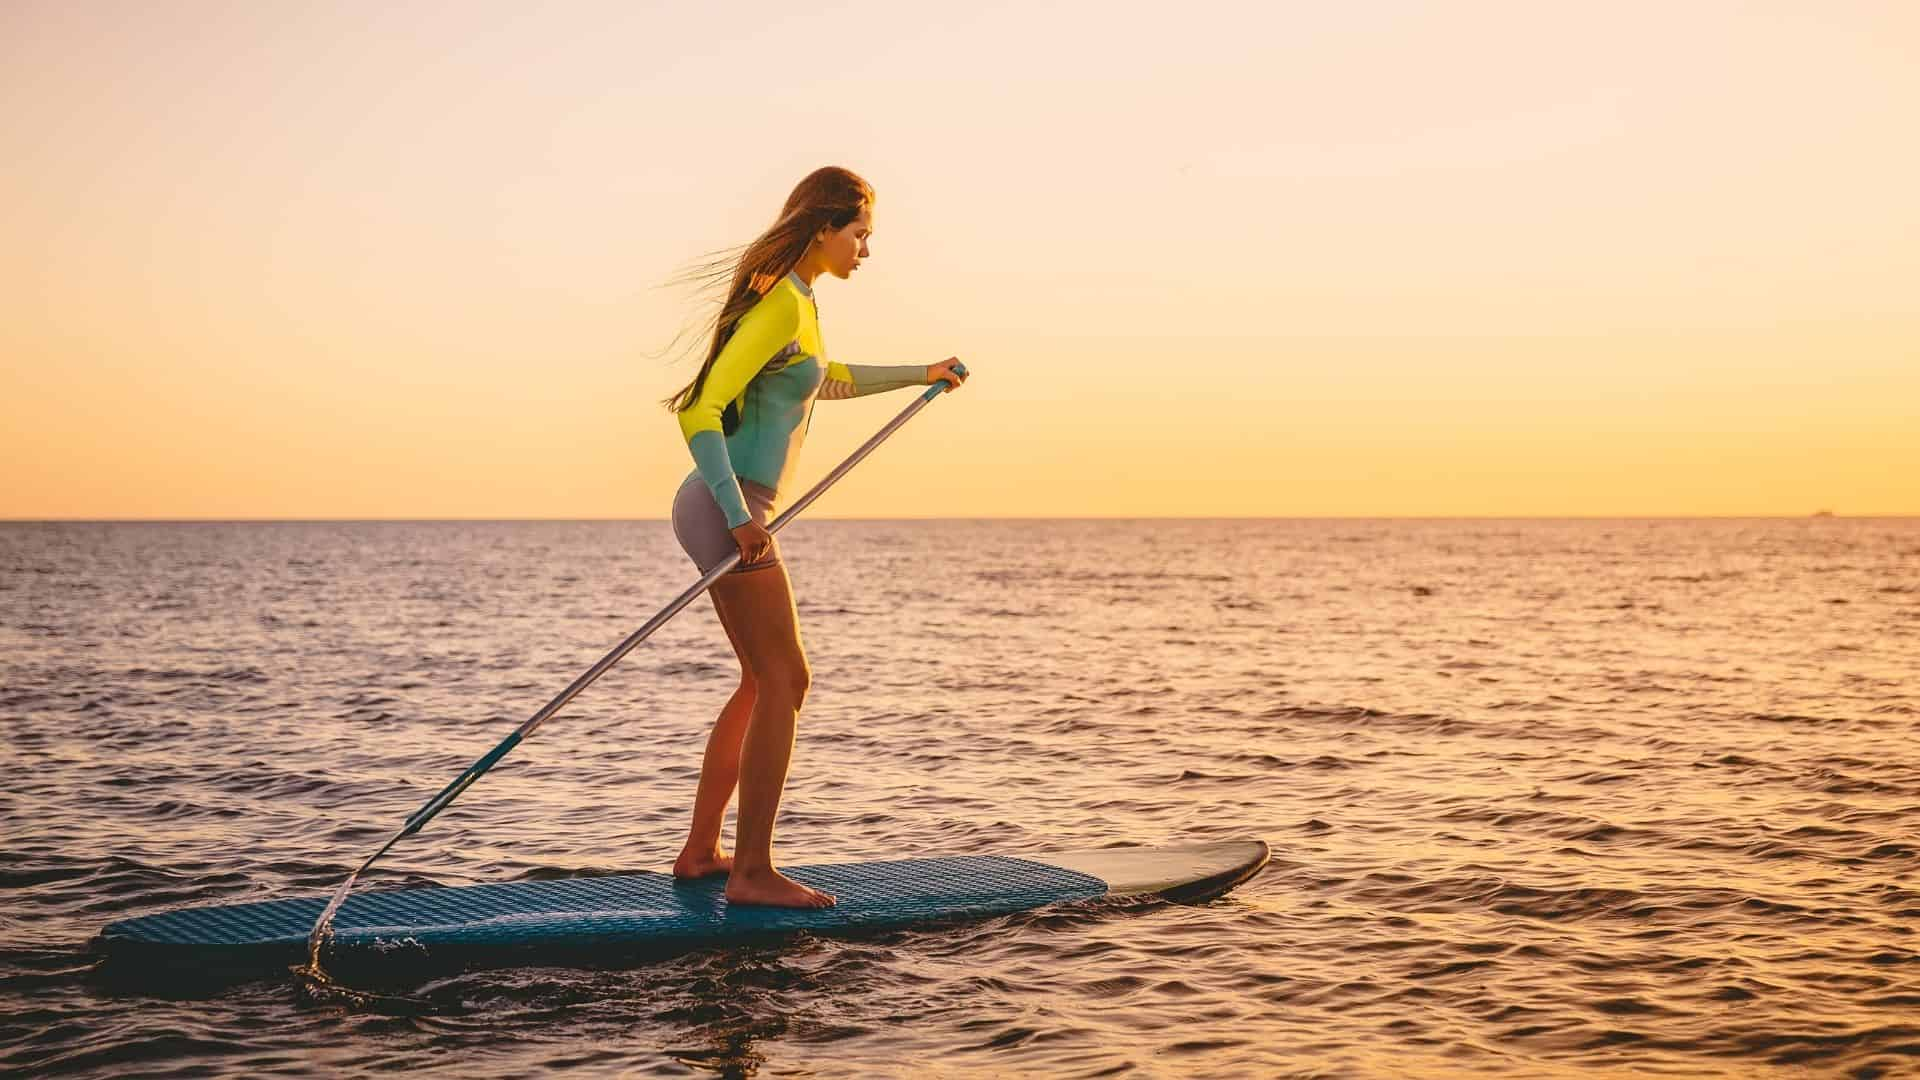 is paddleboarding a good workout